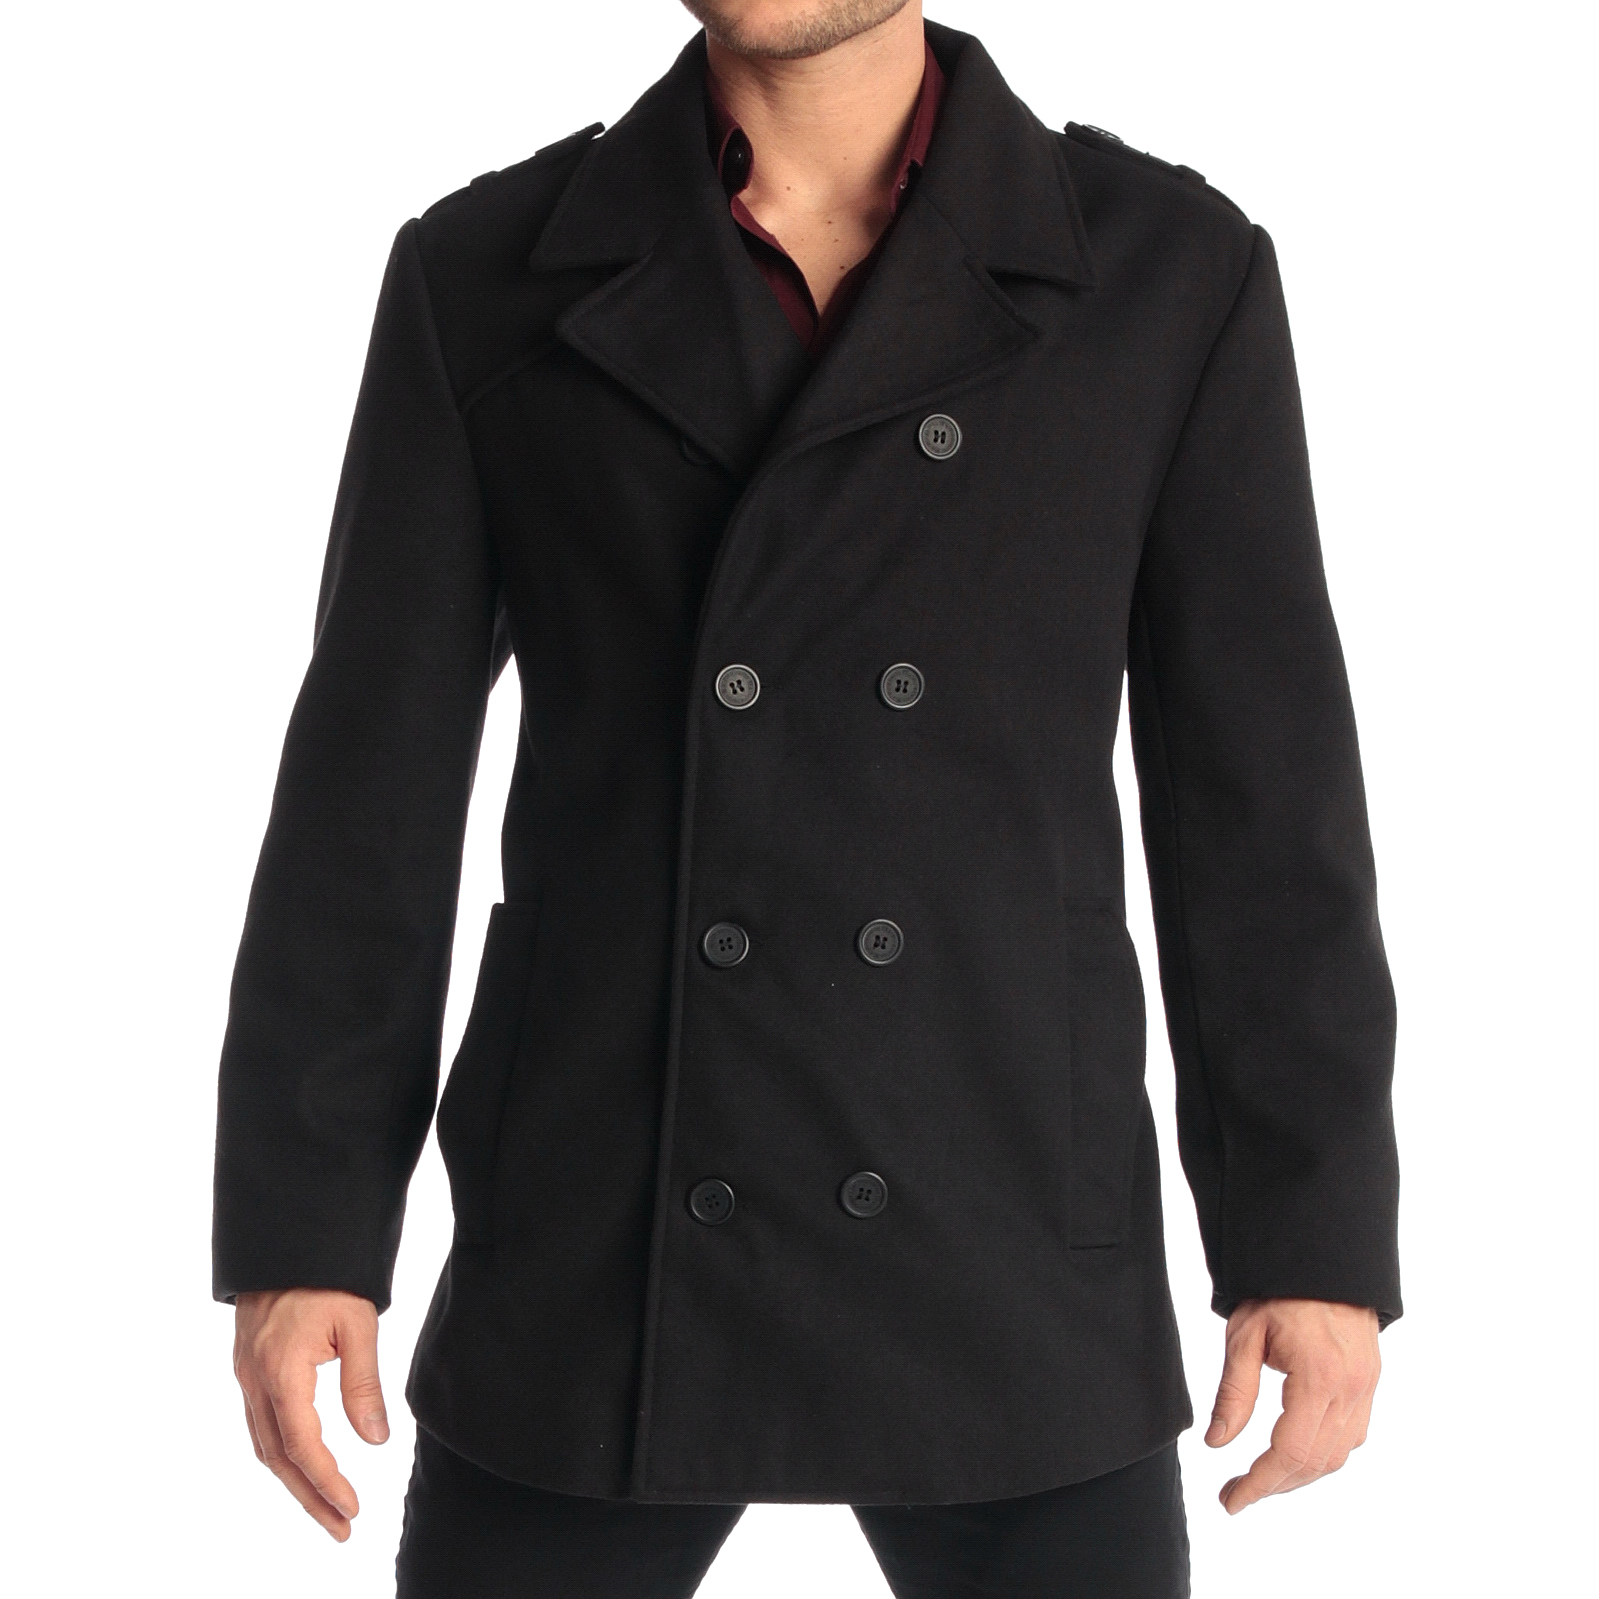 Alpine Swiss Jake Mens Pea Coat Wool Blend Double Breasted Dress Jacket Peacoat by